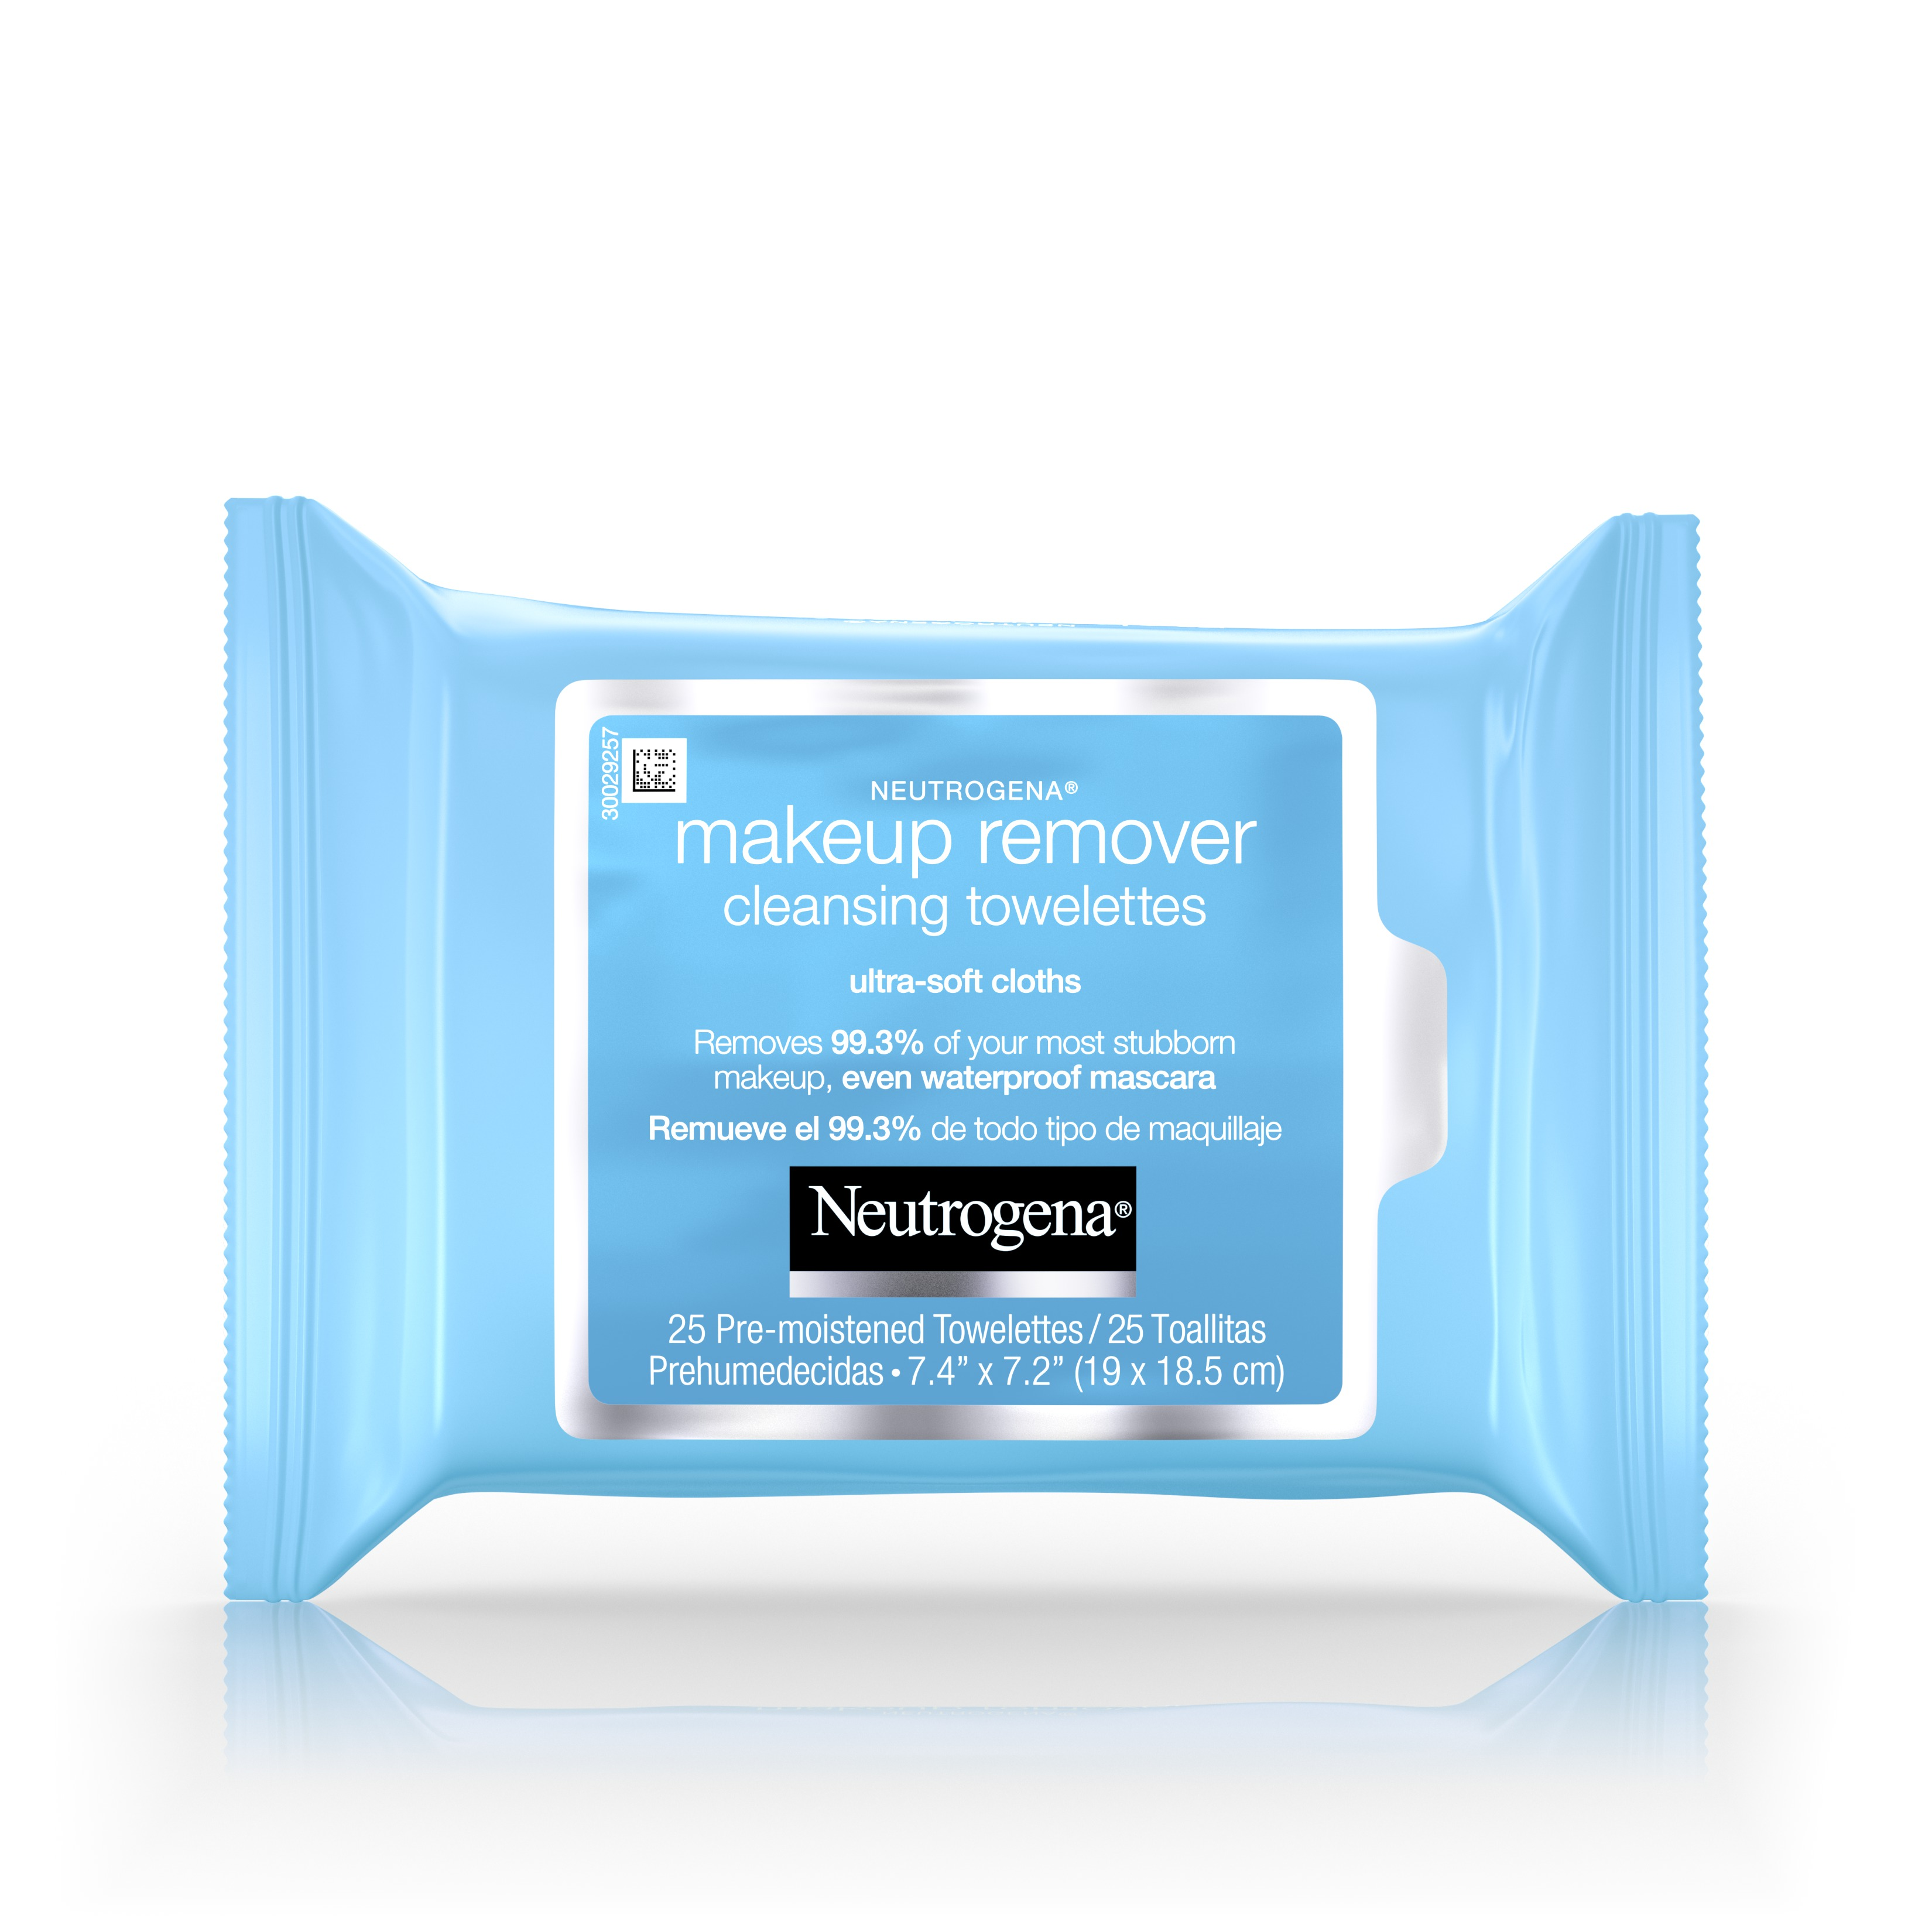 Neutrogena Cleansing Makeup Remover Facial Wipes, 25 ct